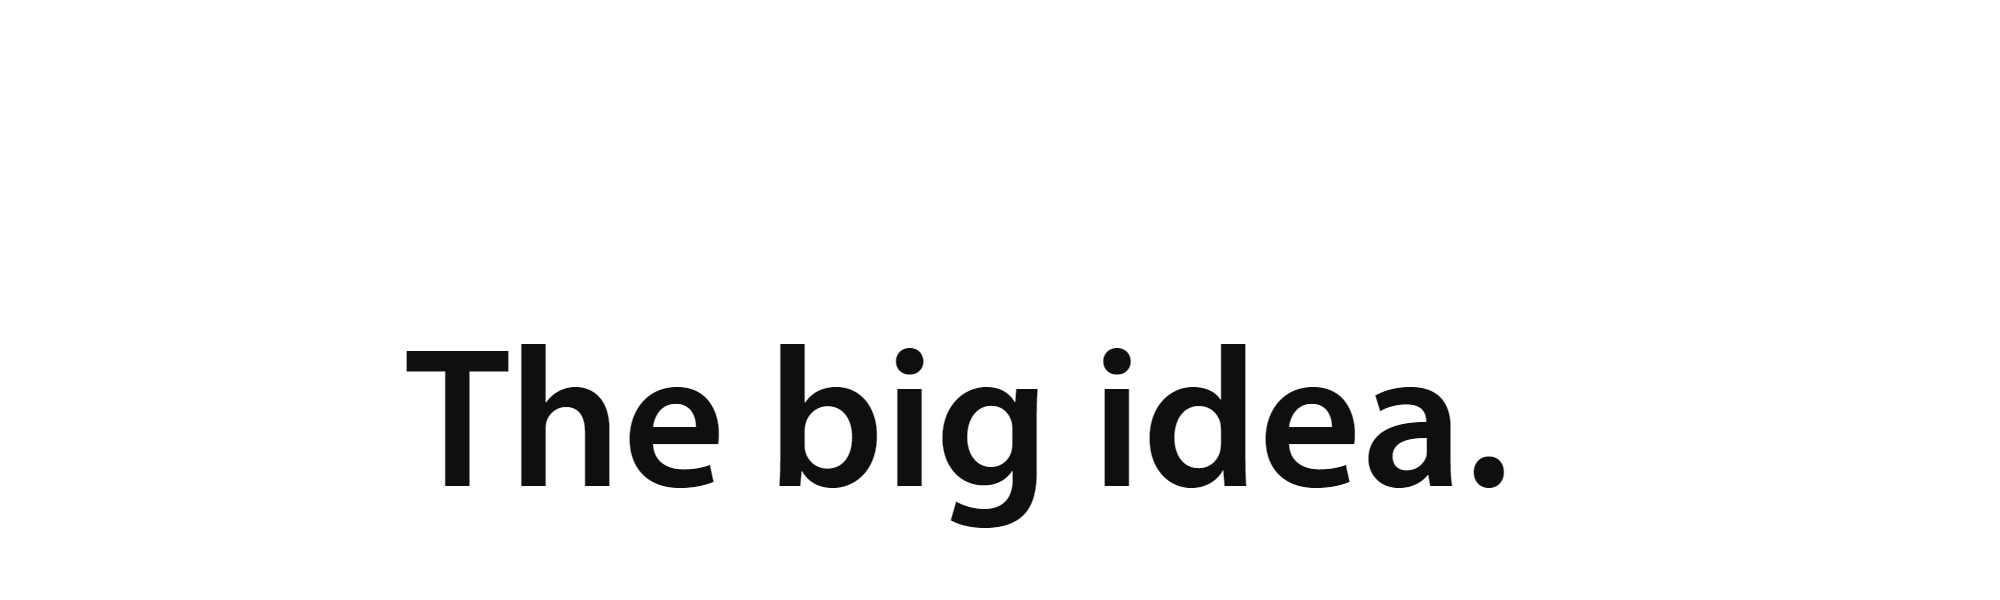 the big idea_5612991289_websites_peopledigitalm_peopledigitalmarketing_digitalmarketing_localseo_adwords_graphicdesign_explainervideo_socialmediamarketing_reputationmanagement_ecommerce_onlineadvertising_ebay_amazon.png